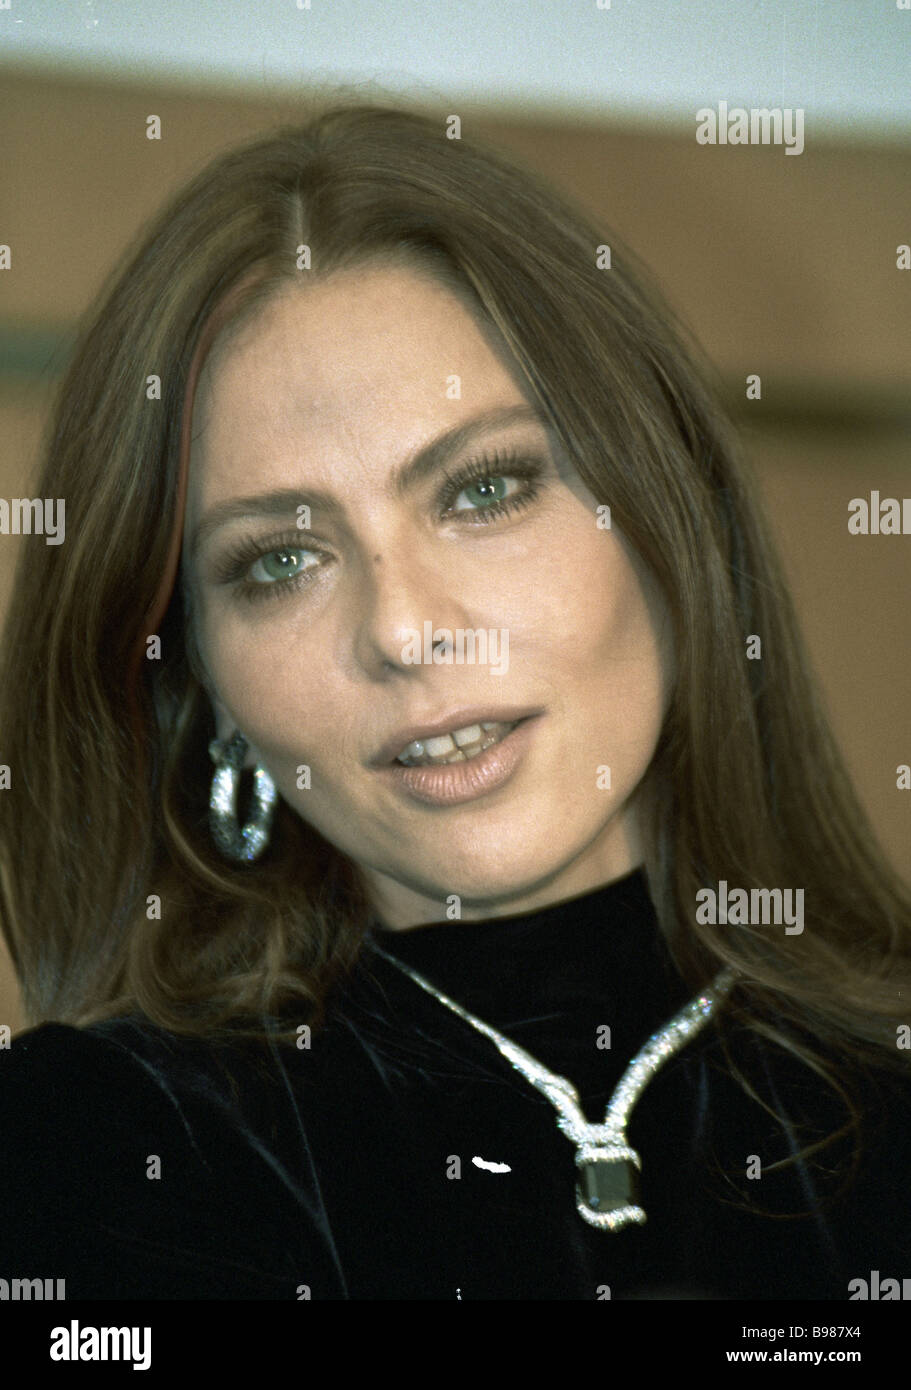 Ornella Muti (born 1955) Ornella Muti (born 1955) new images